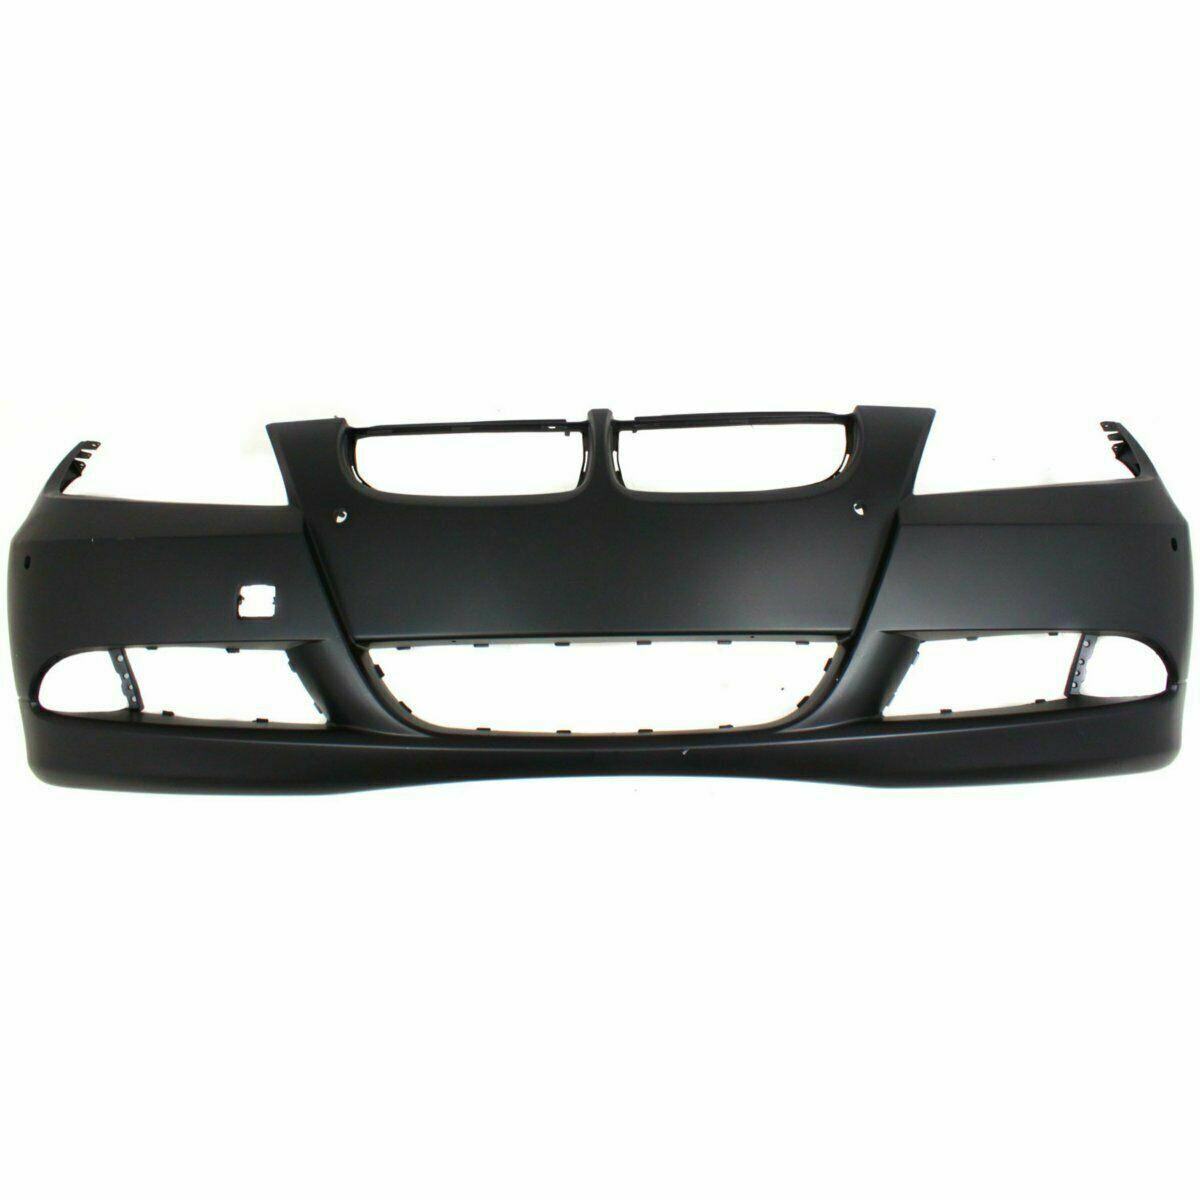 2006-2008 BMW 3-Series Sedan/Wagon (W/ Parking Distance Control and W/O HL Washer Cutouts) Front Bumper